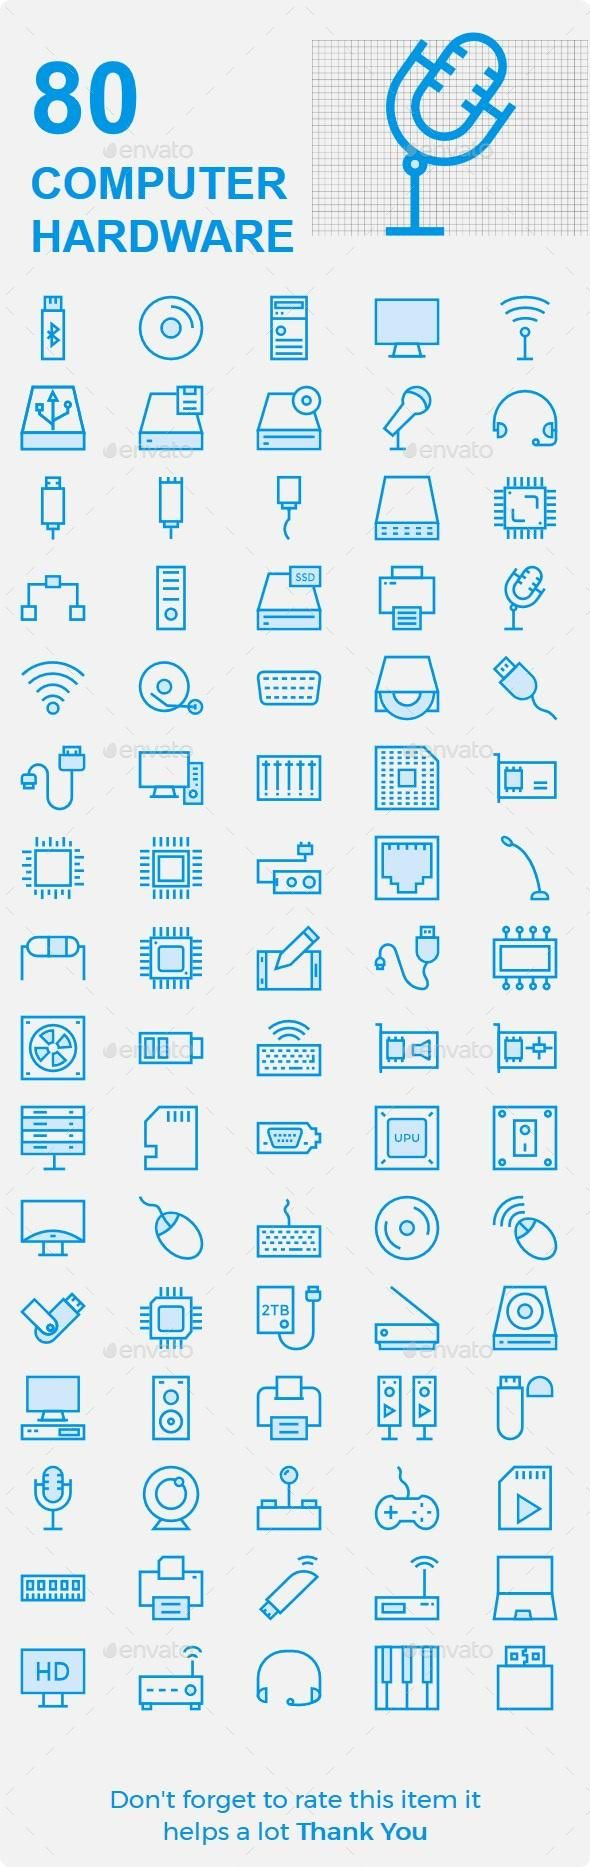 Computer Hardware Cute Icons – Envato #icon #GraphicDesign #design #technology #BestDesignResources